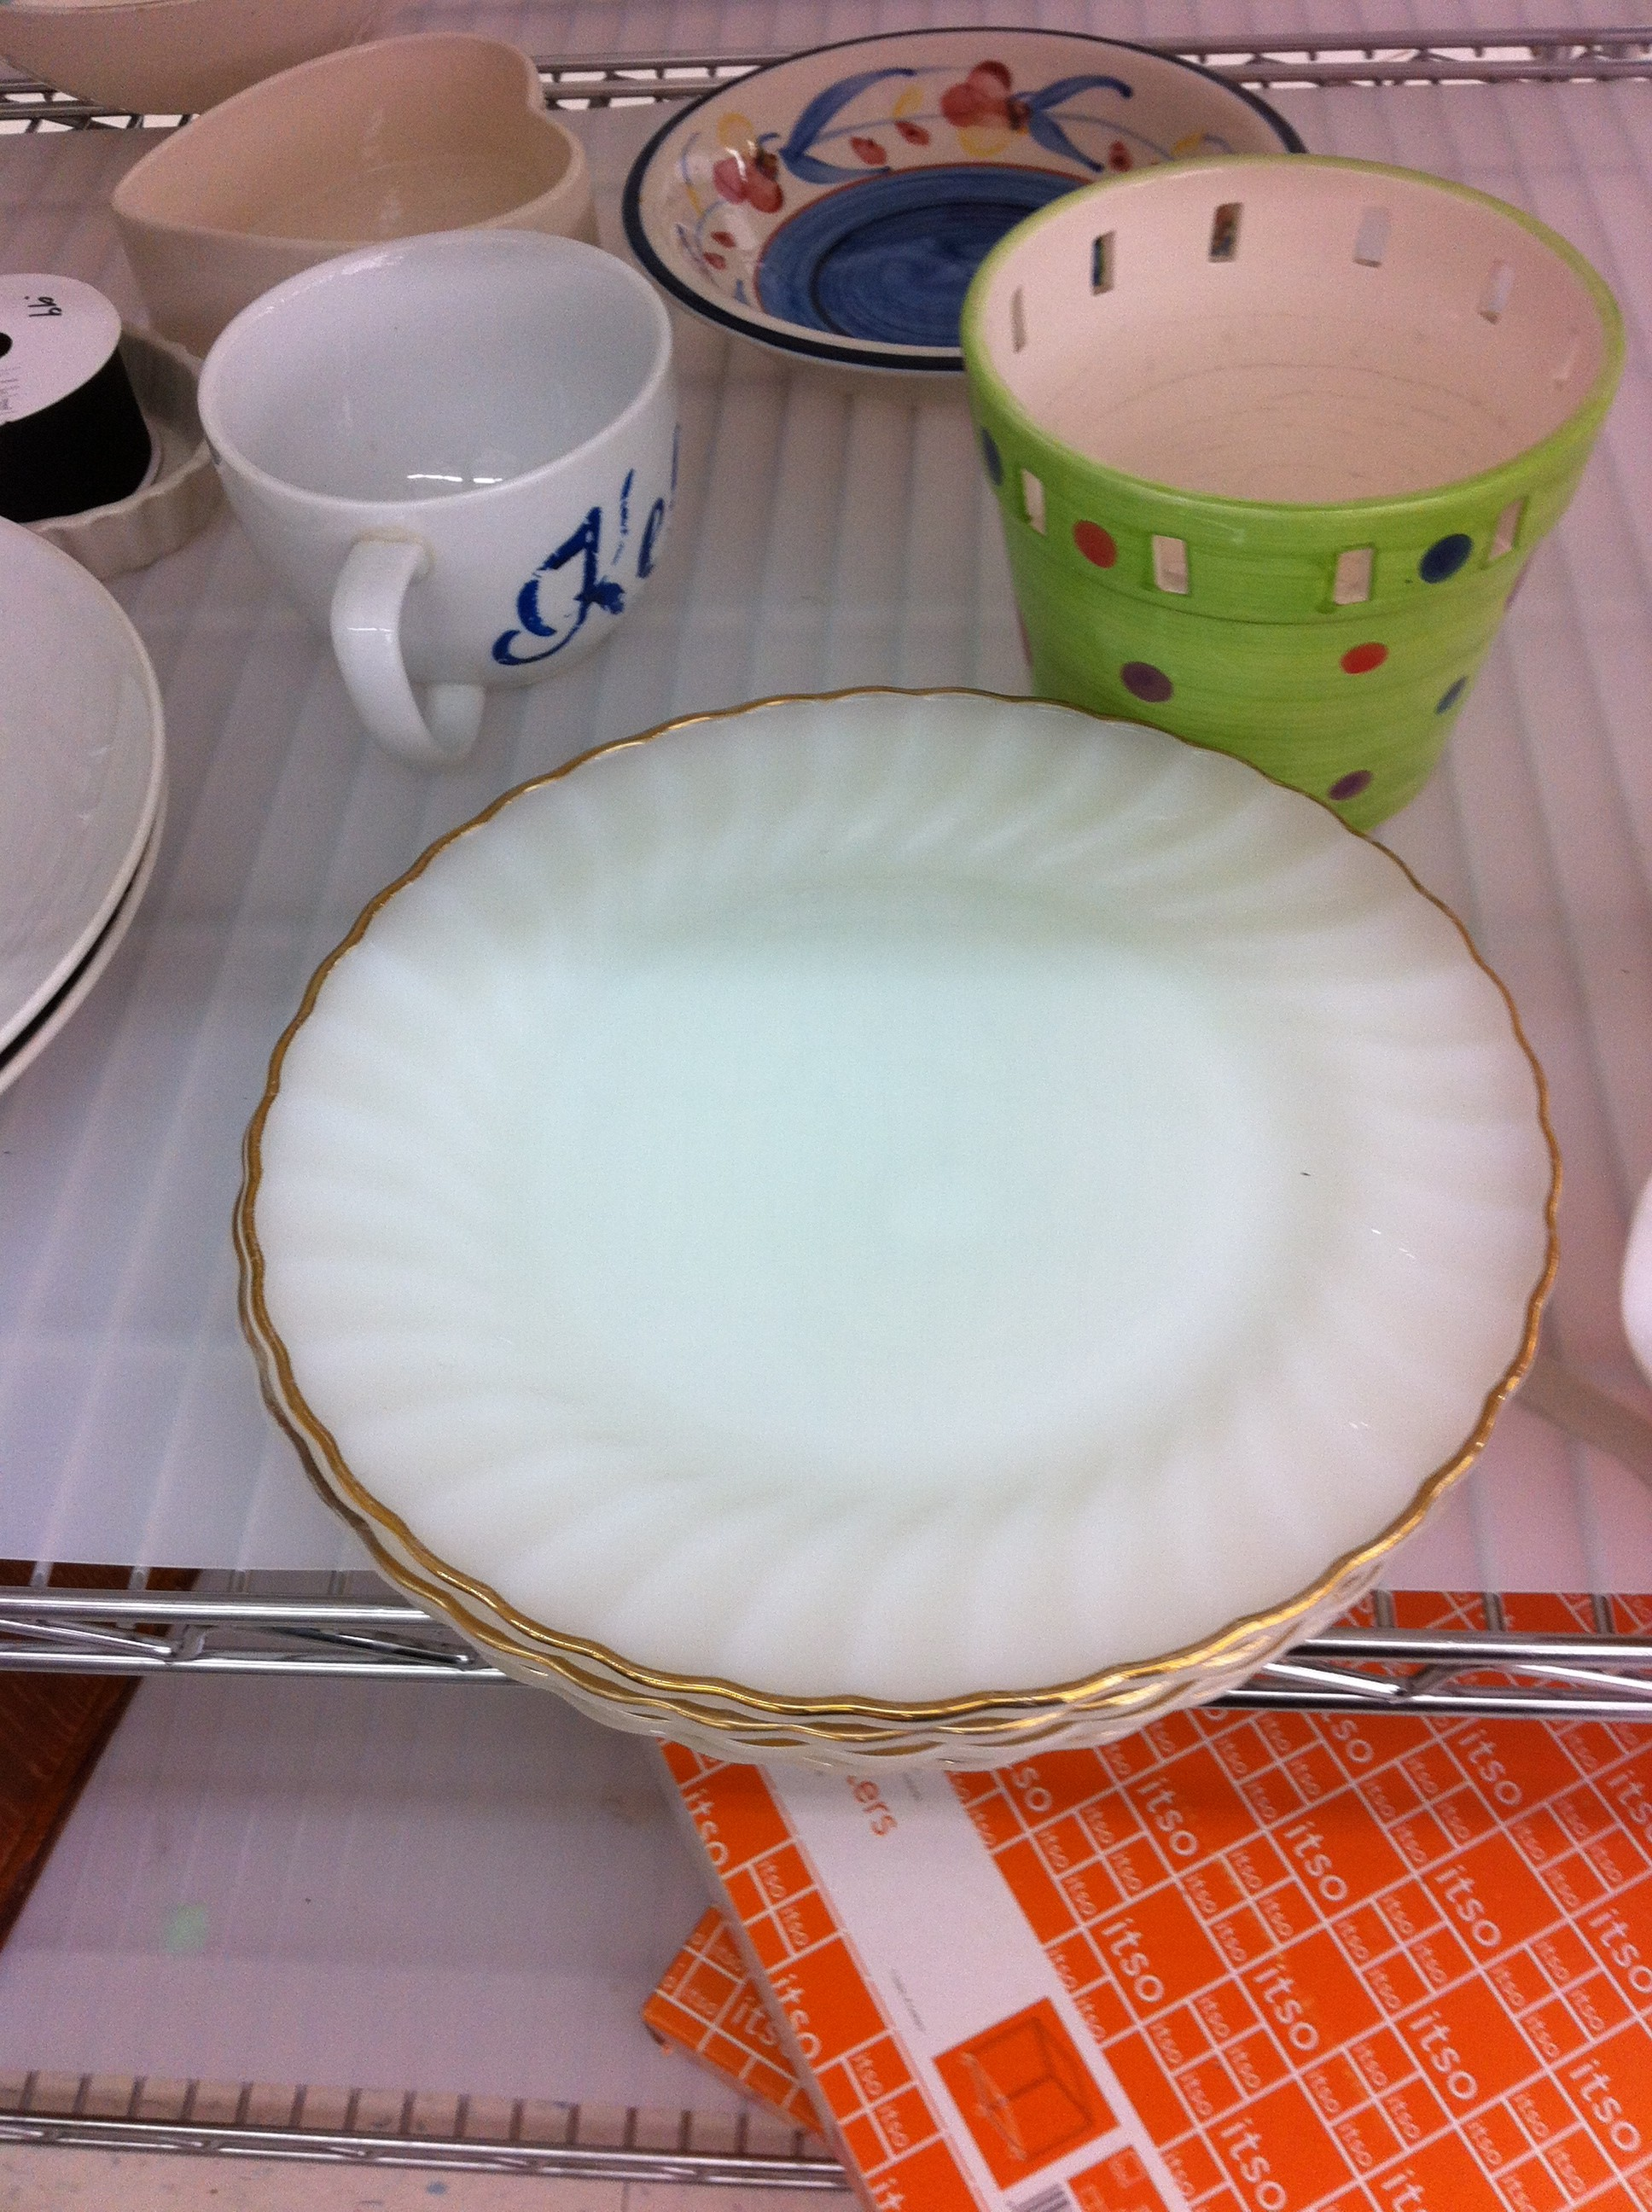 A pic of vintage milk glass plates with gold rims